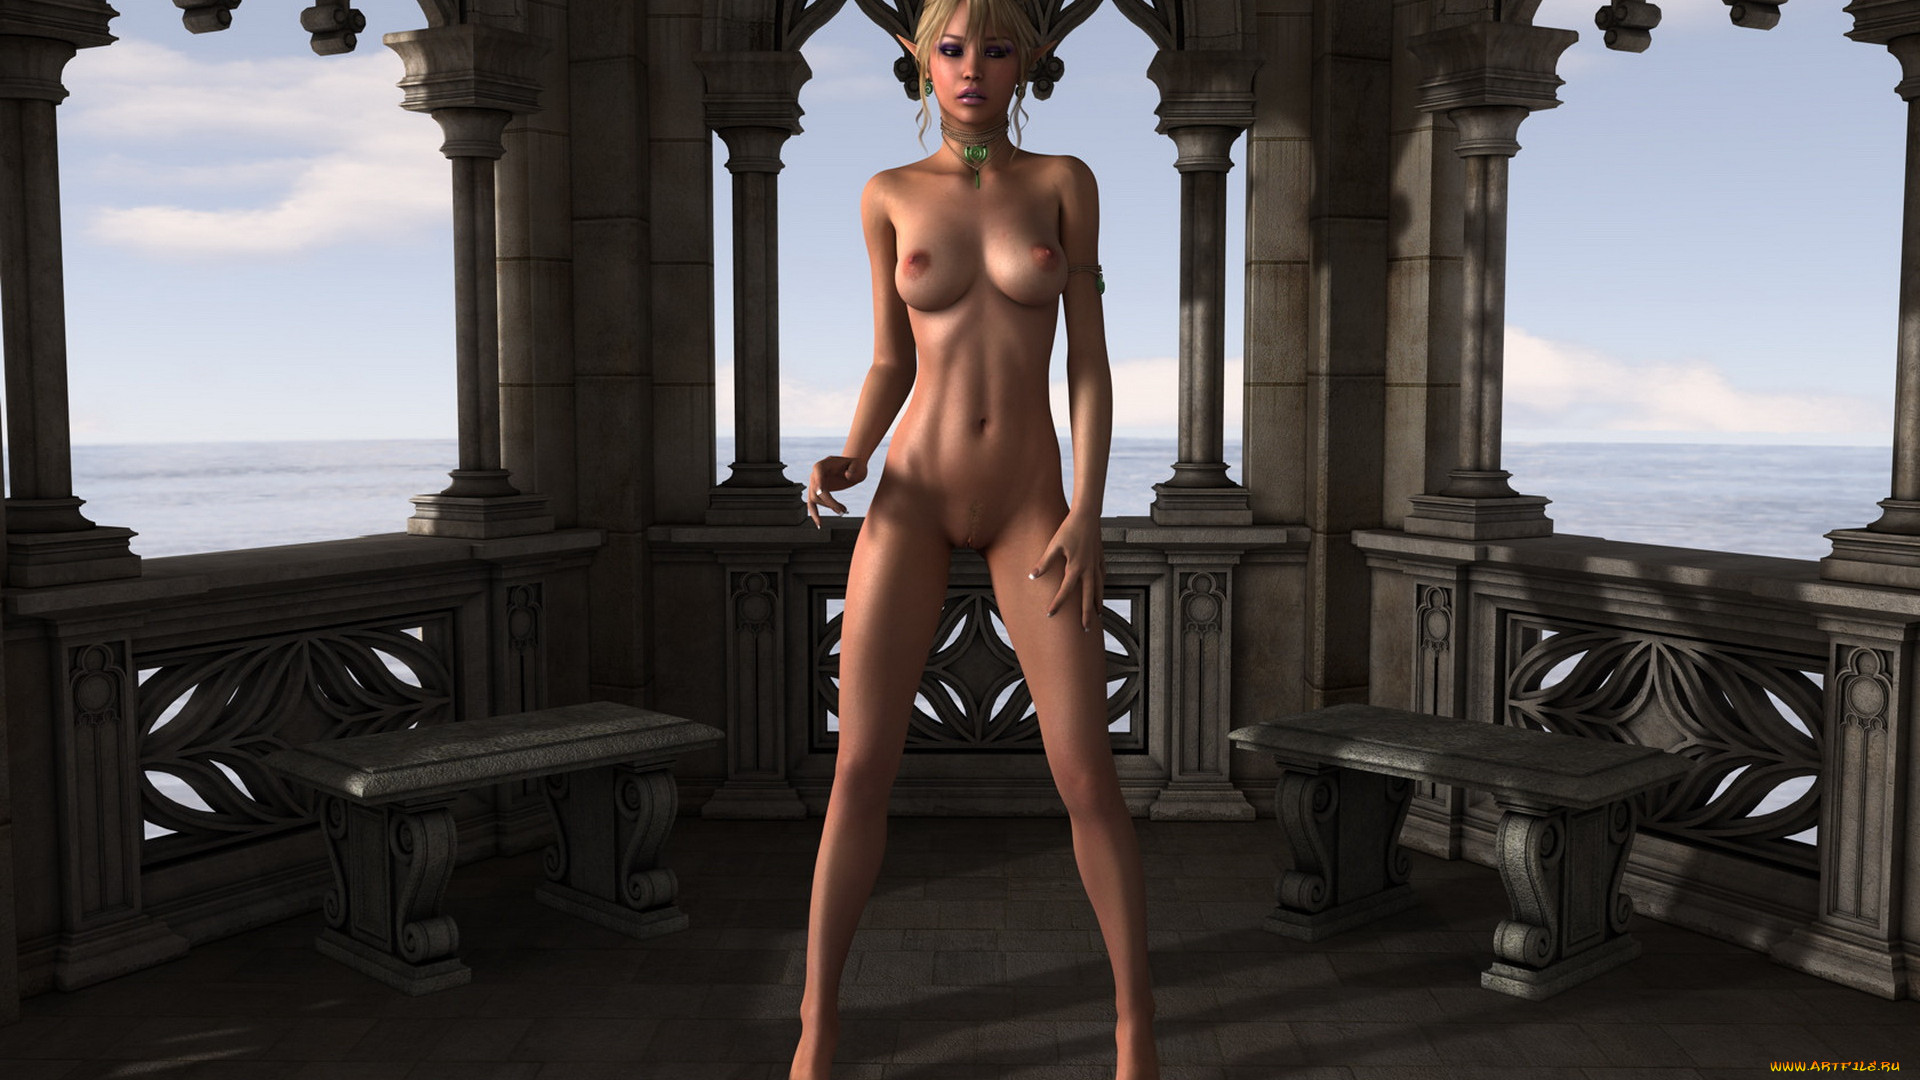 Nude animated elf girls hentia thumbs